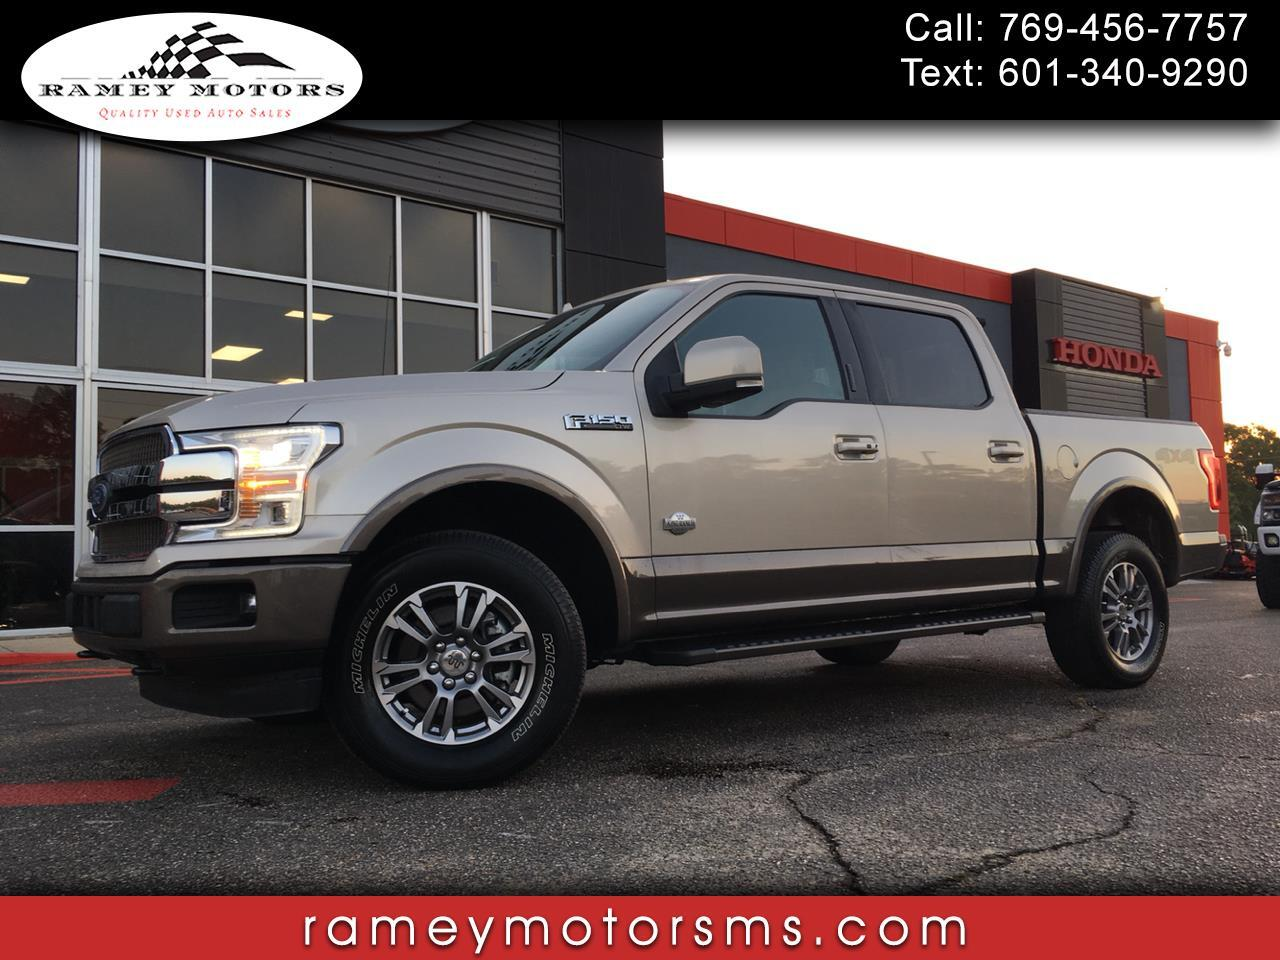 2018 Ford F-150 4WD CREWCAB KING RANCH ULTIMATE